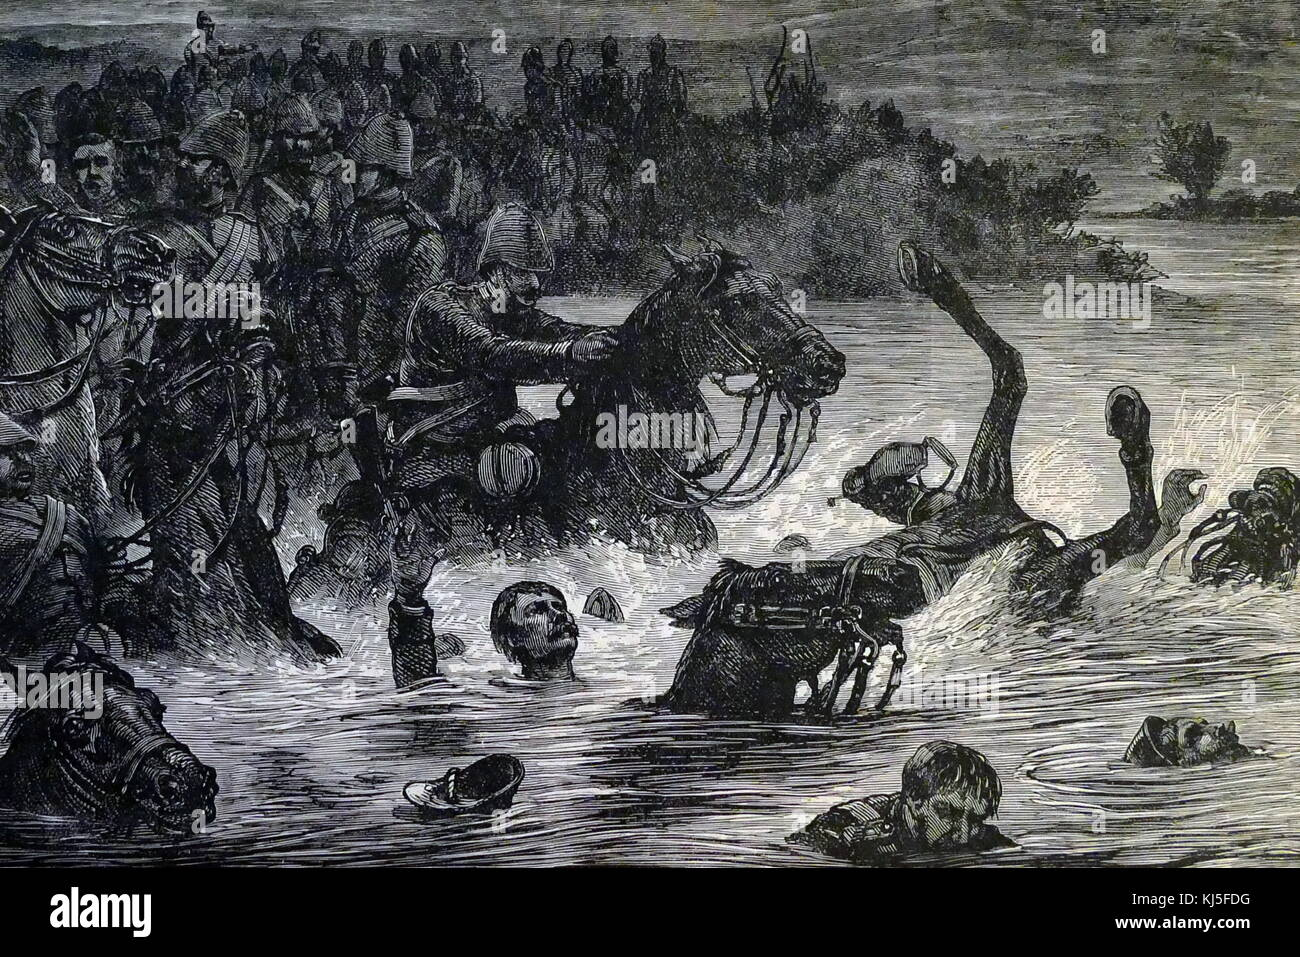 Illustration depicting the river disaster of the 10th Hussars during the Second Anglo-Afghan War. The illustration Stock Photo